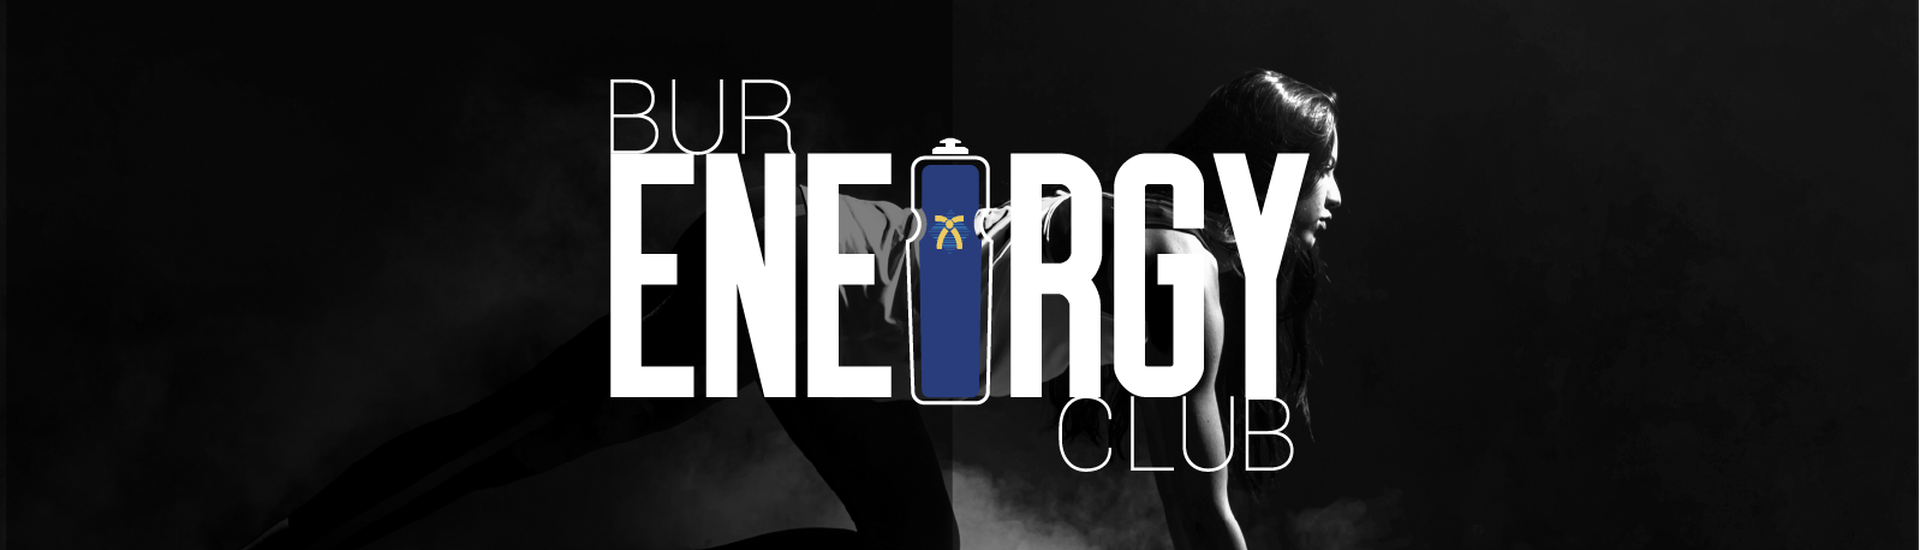 Club Interamnia | Burenergy